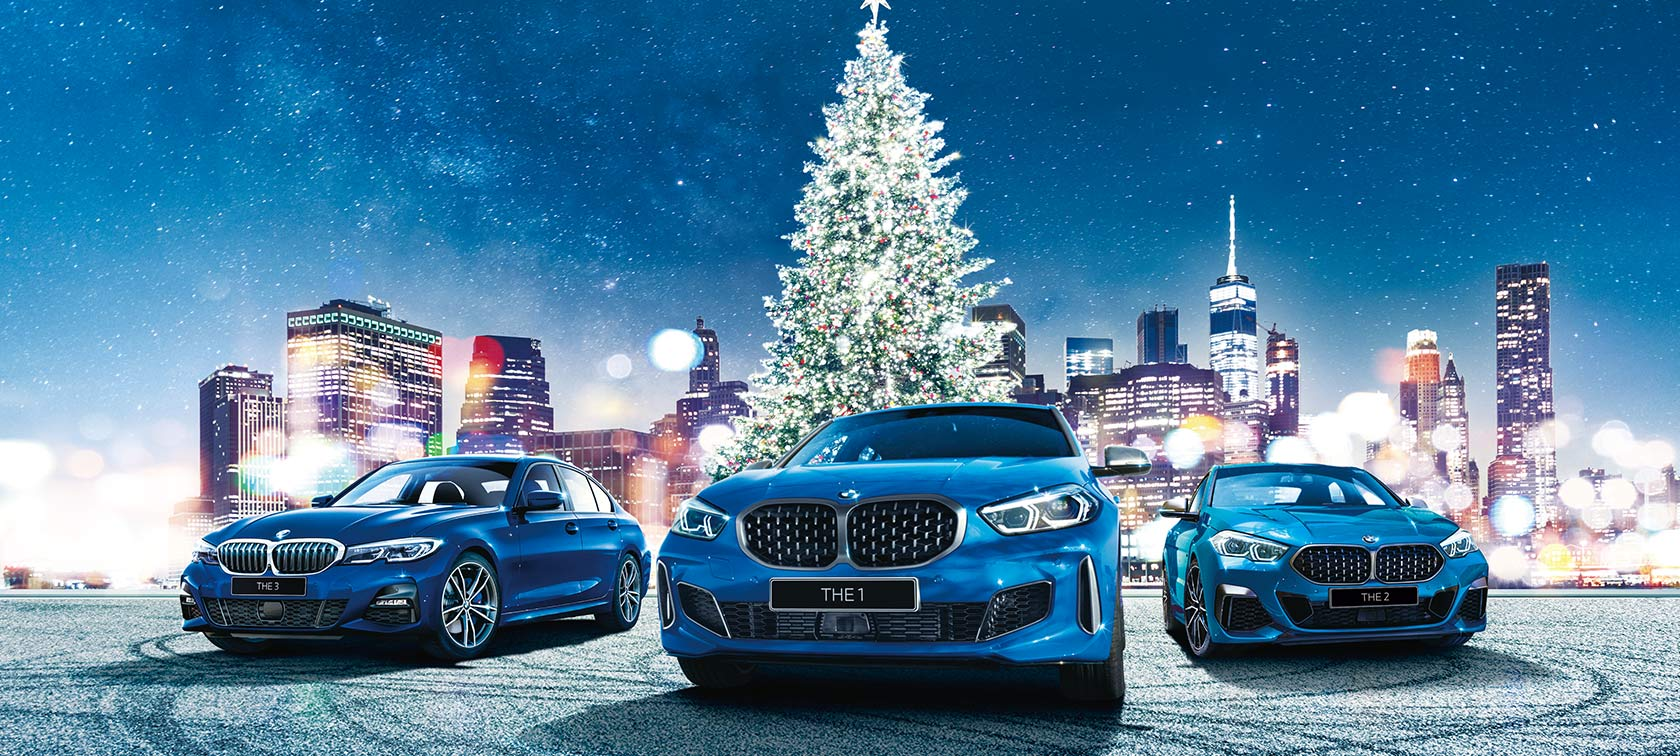 BMW CHRISTMAS FAIR.